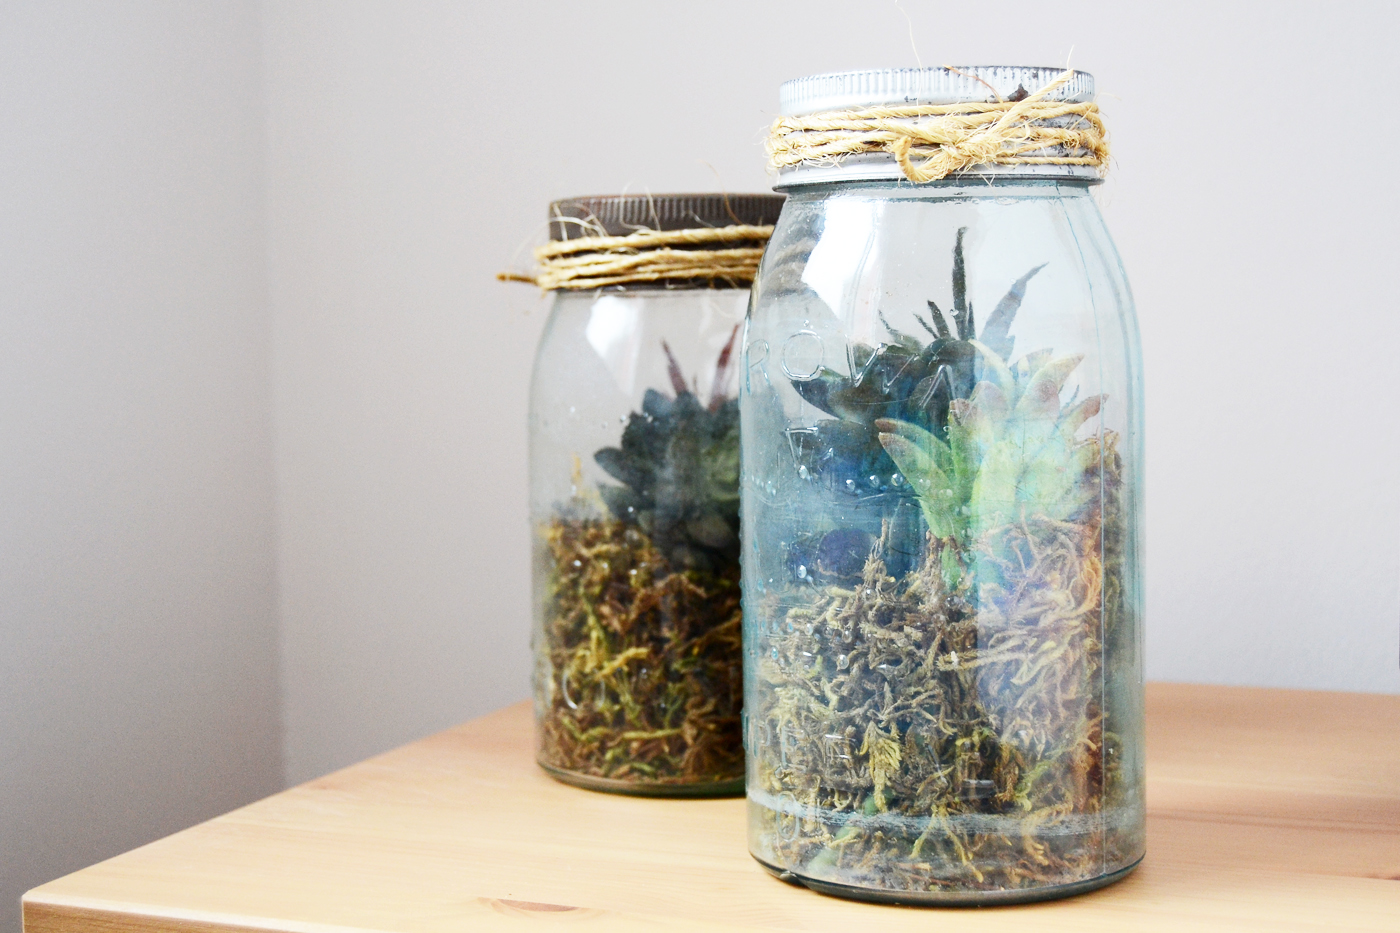 Learn How To Make A Diy Terrarium Using A Vintage Mason Jar And Succulents